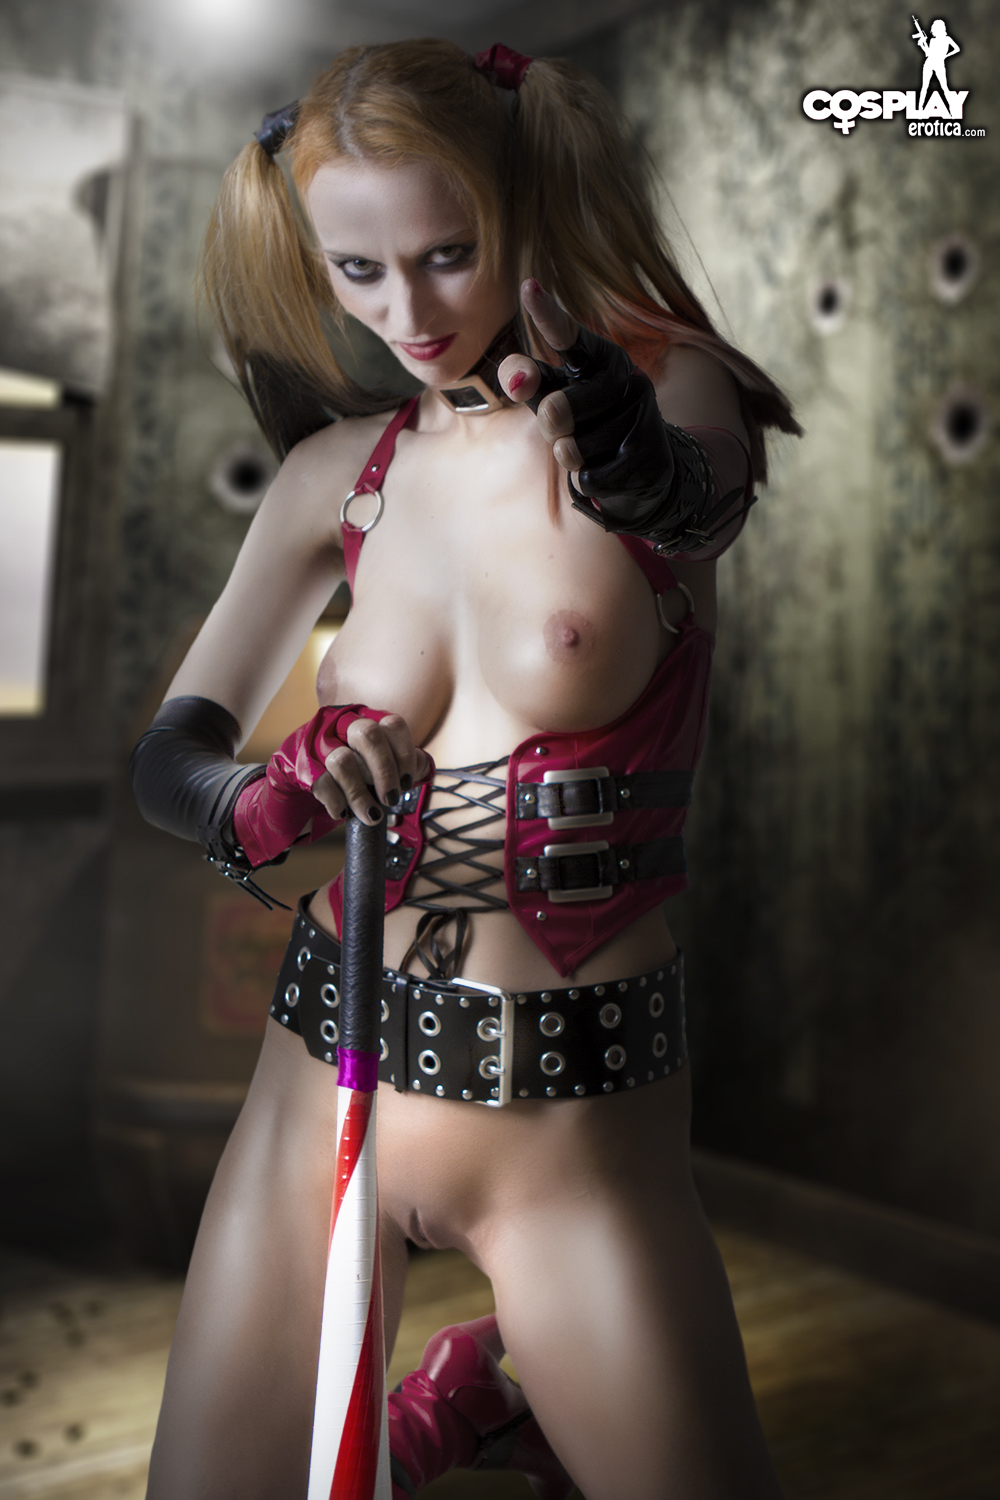 Free harley quinn nude pics opinion you